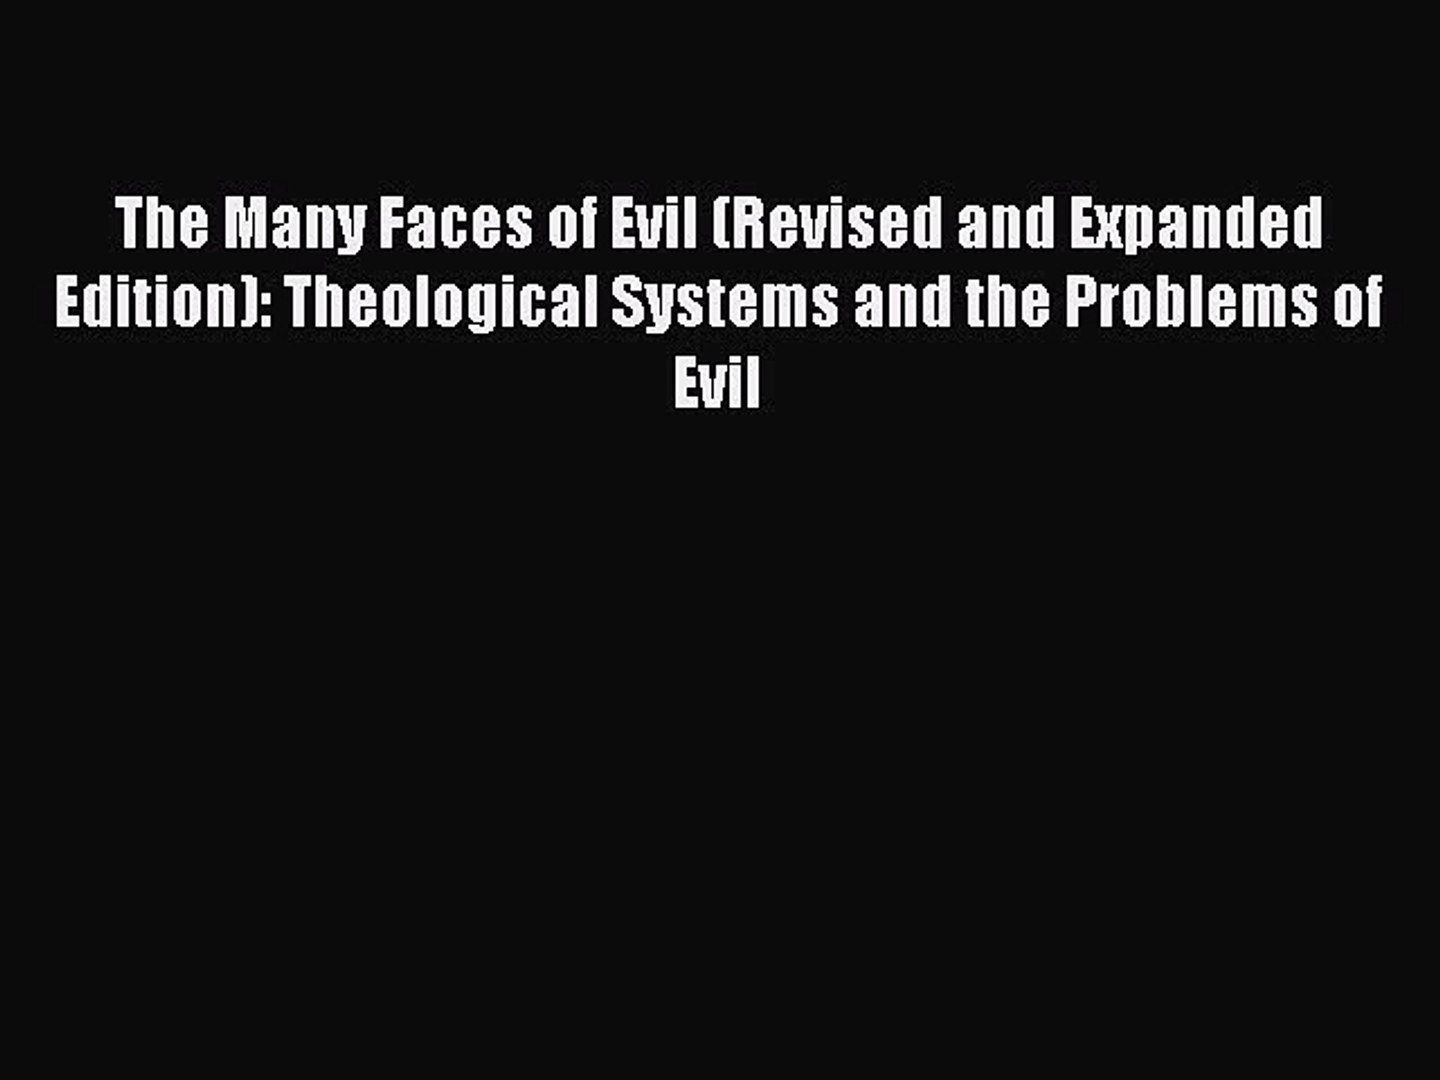 [PDF Download] The Many Faces of Evil (Revised and Expanded Edition): Theological Systems and